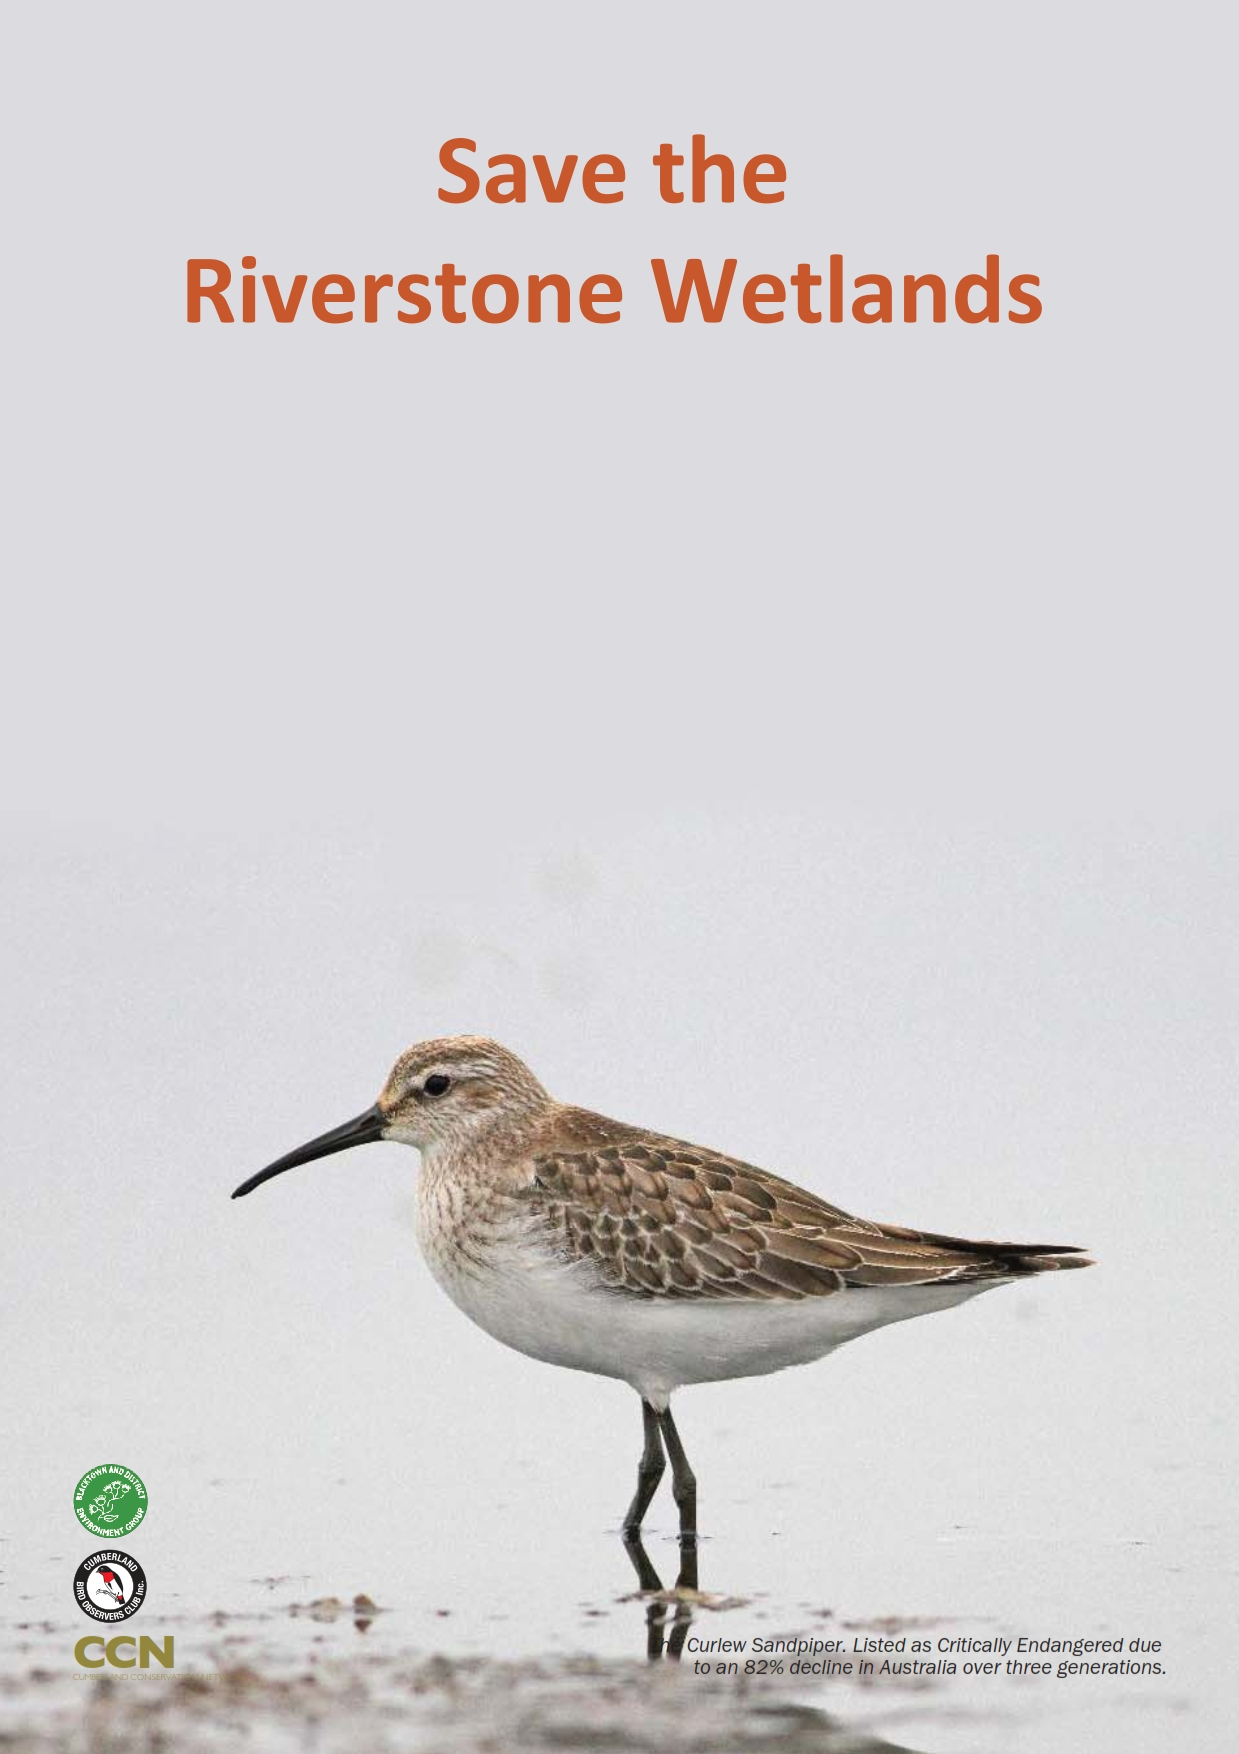 Save Riverstone Wetlands_001